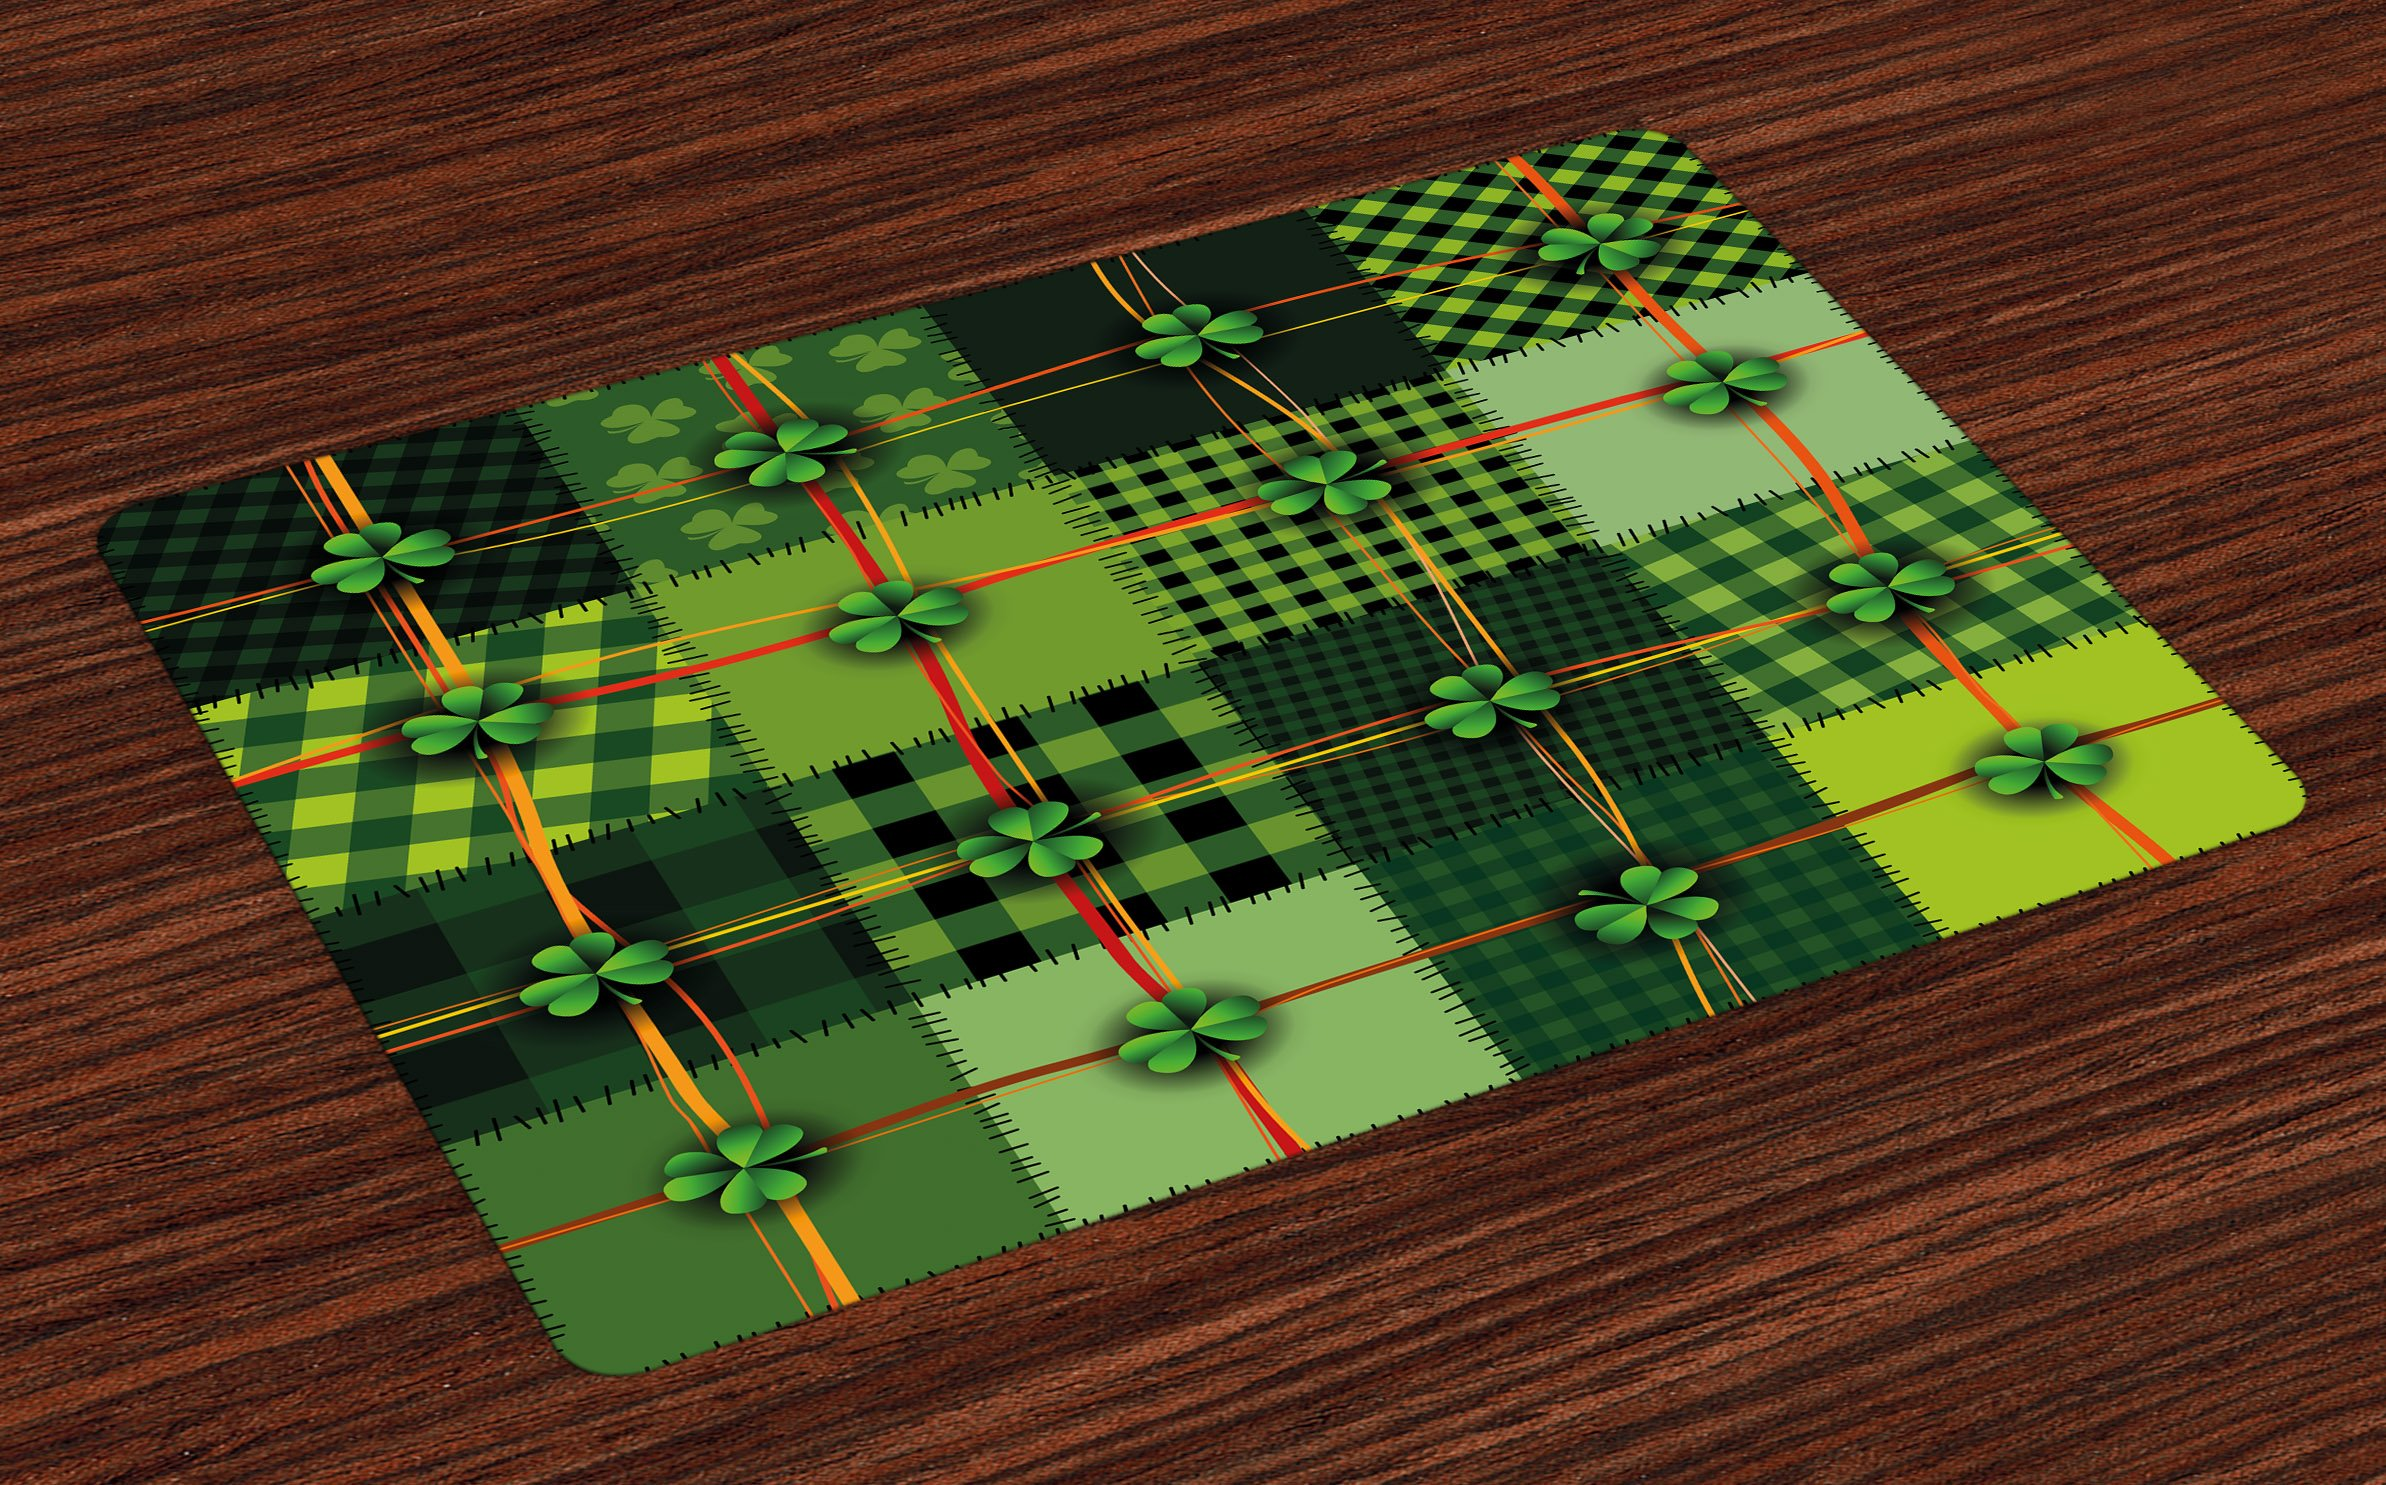 Ambesonne Irish Place Mats Set of 4, Patchwork Style St. Patrick's Day Themed Celtic Quilt Cultural Checkered with Clovers, Washable Fabric Placemats for Dining Room Kitchen Table Decor, Multicolor